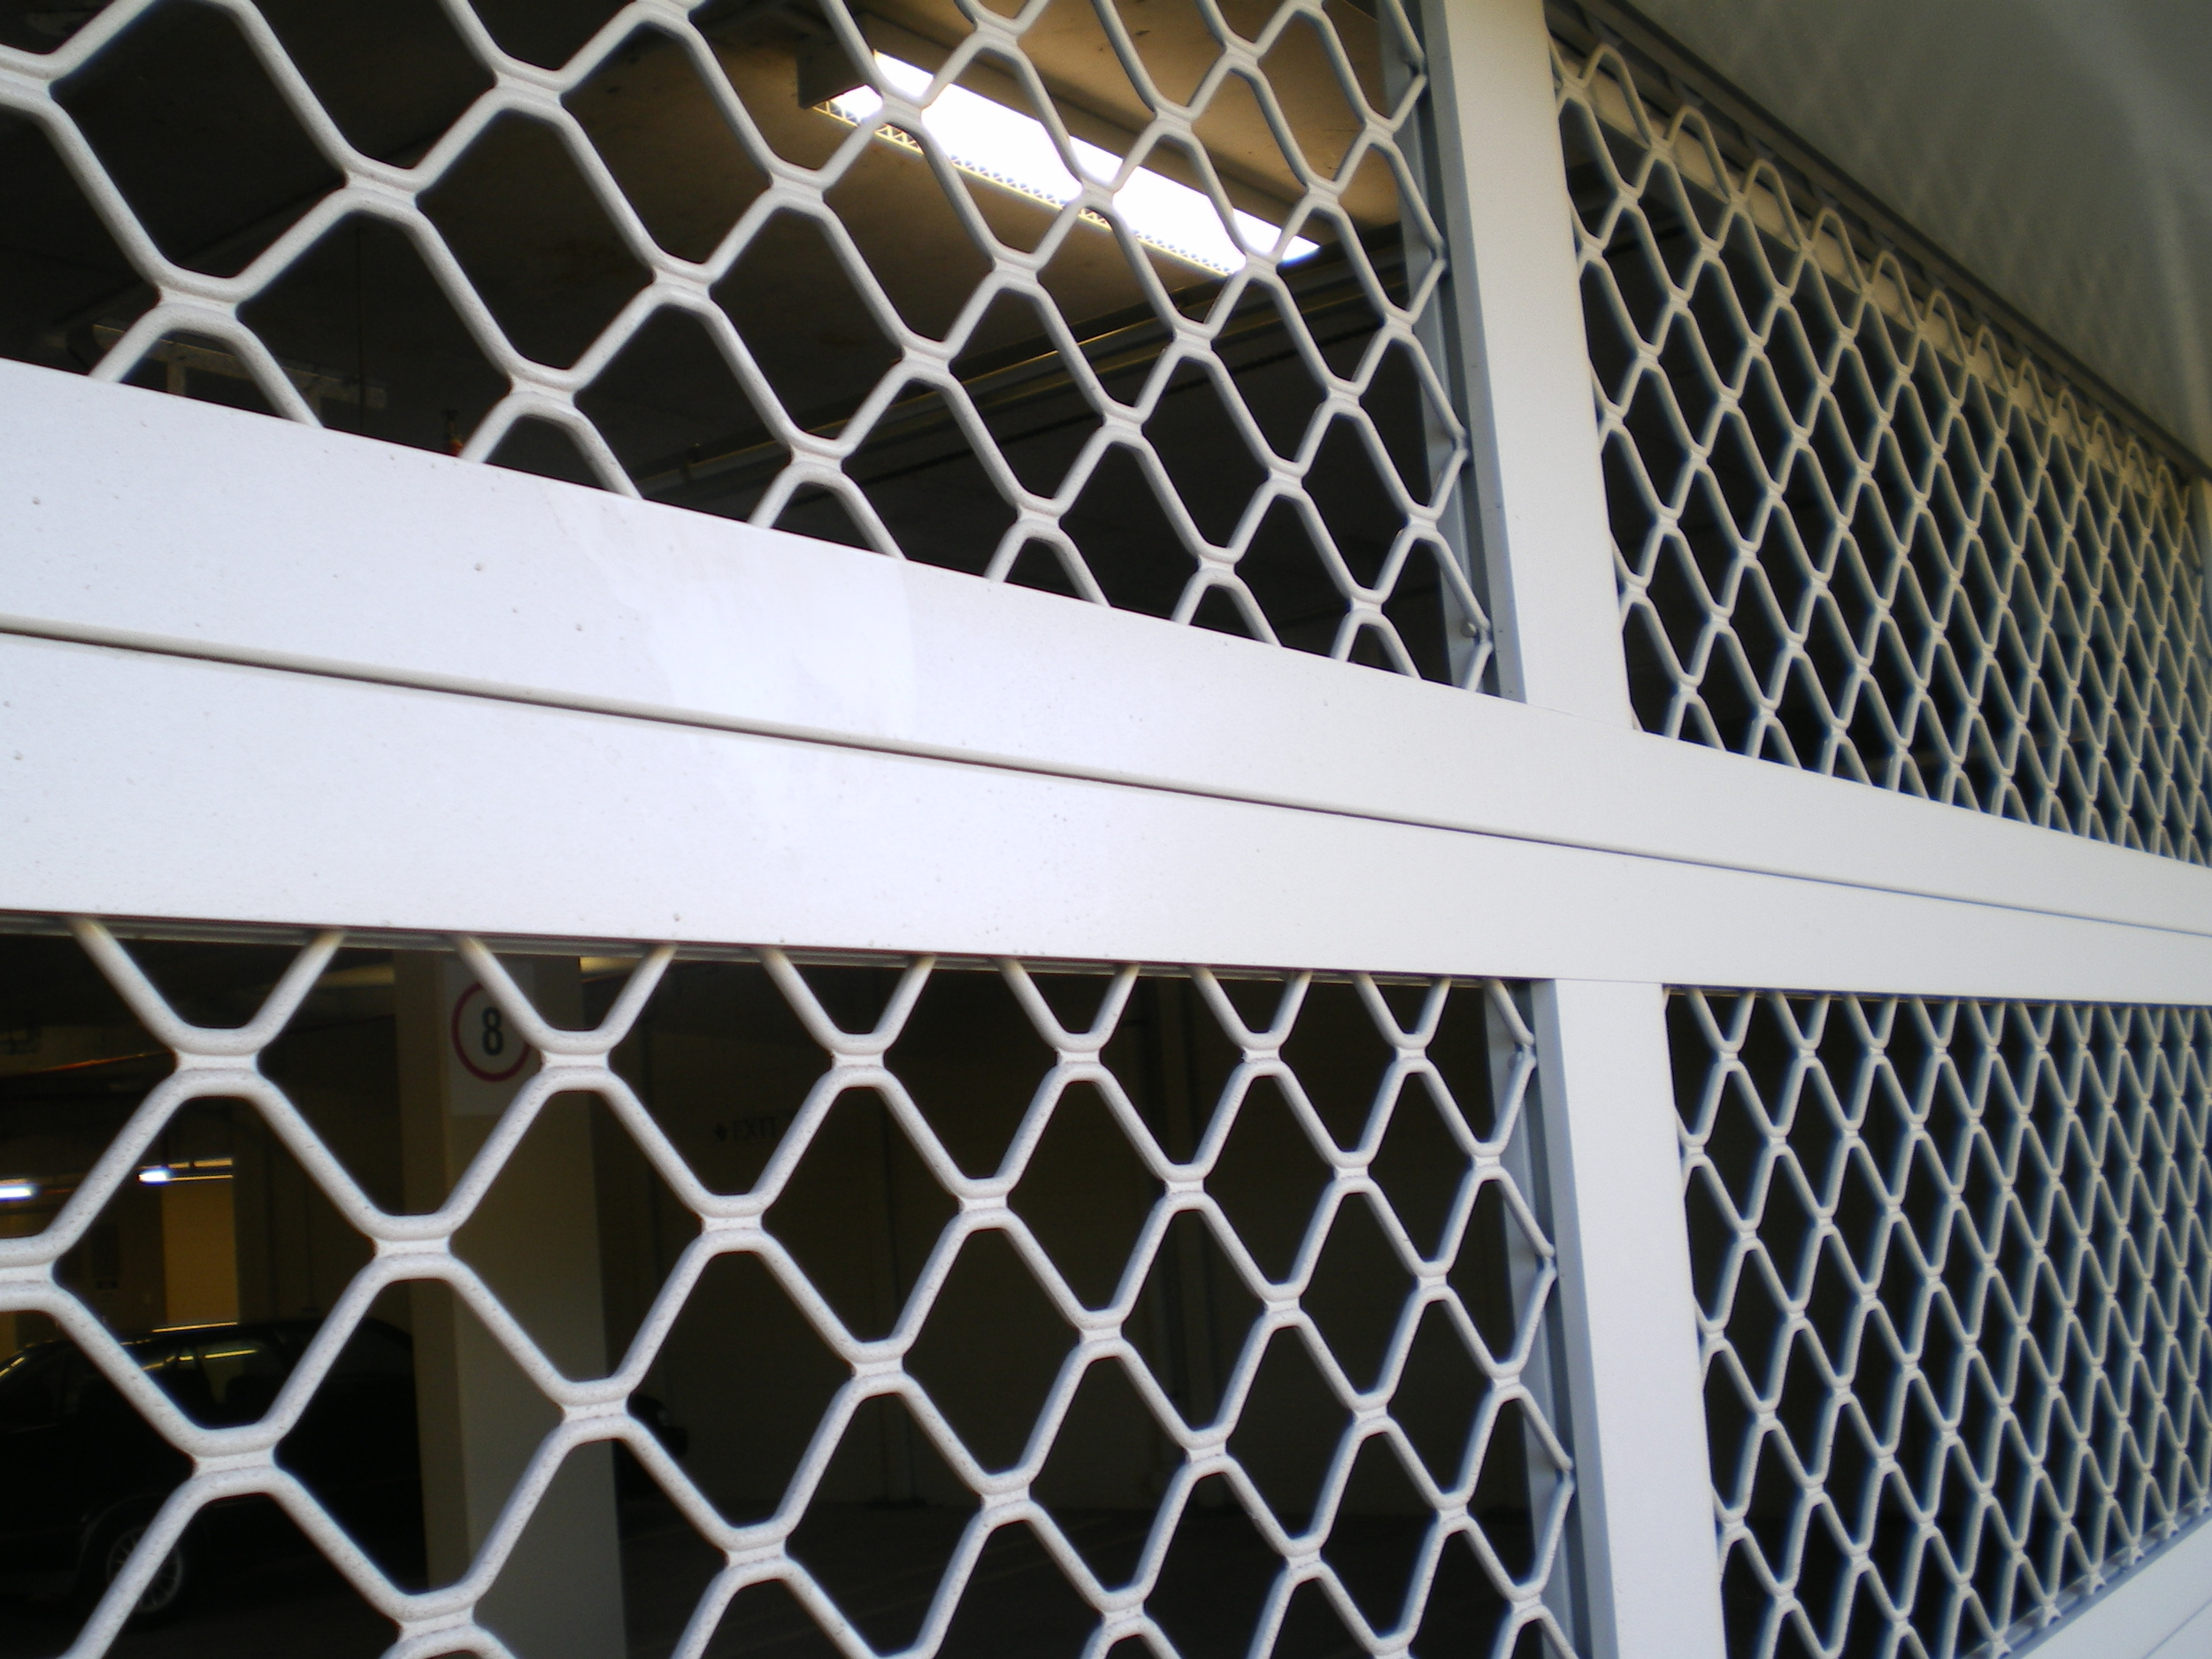 Aluminium Diamond mesh 'air flow' Sectional Door (one click on image to enlarge)